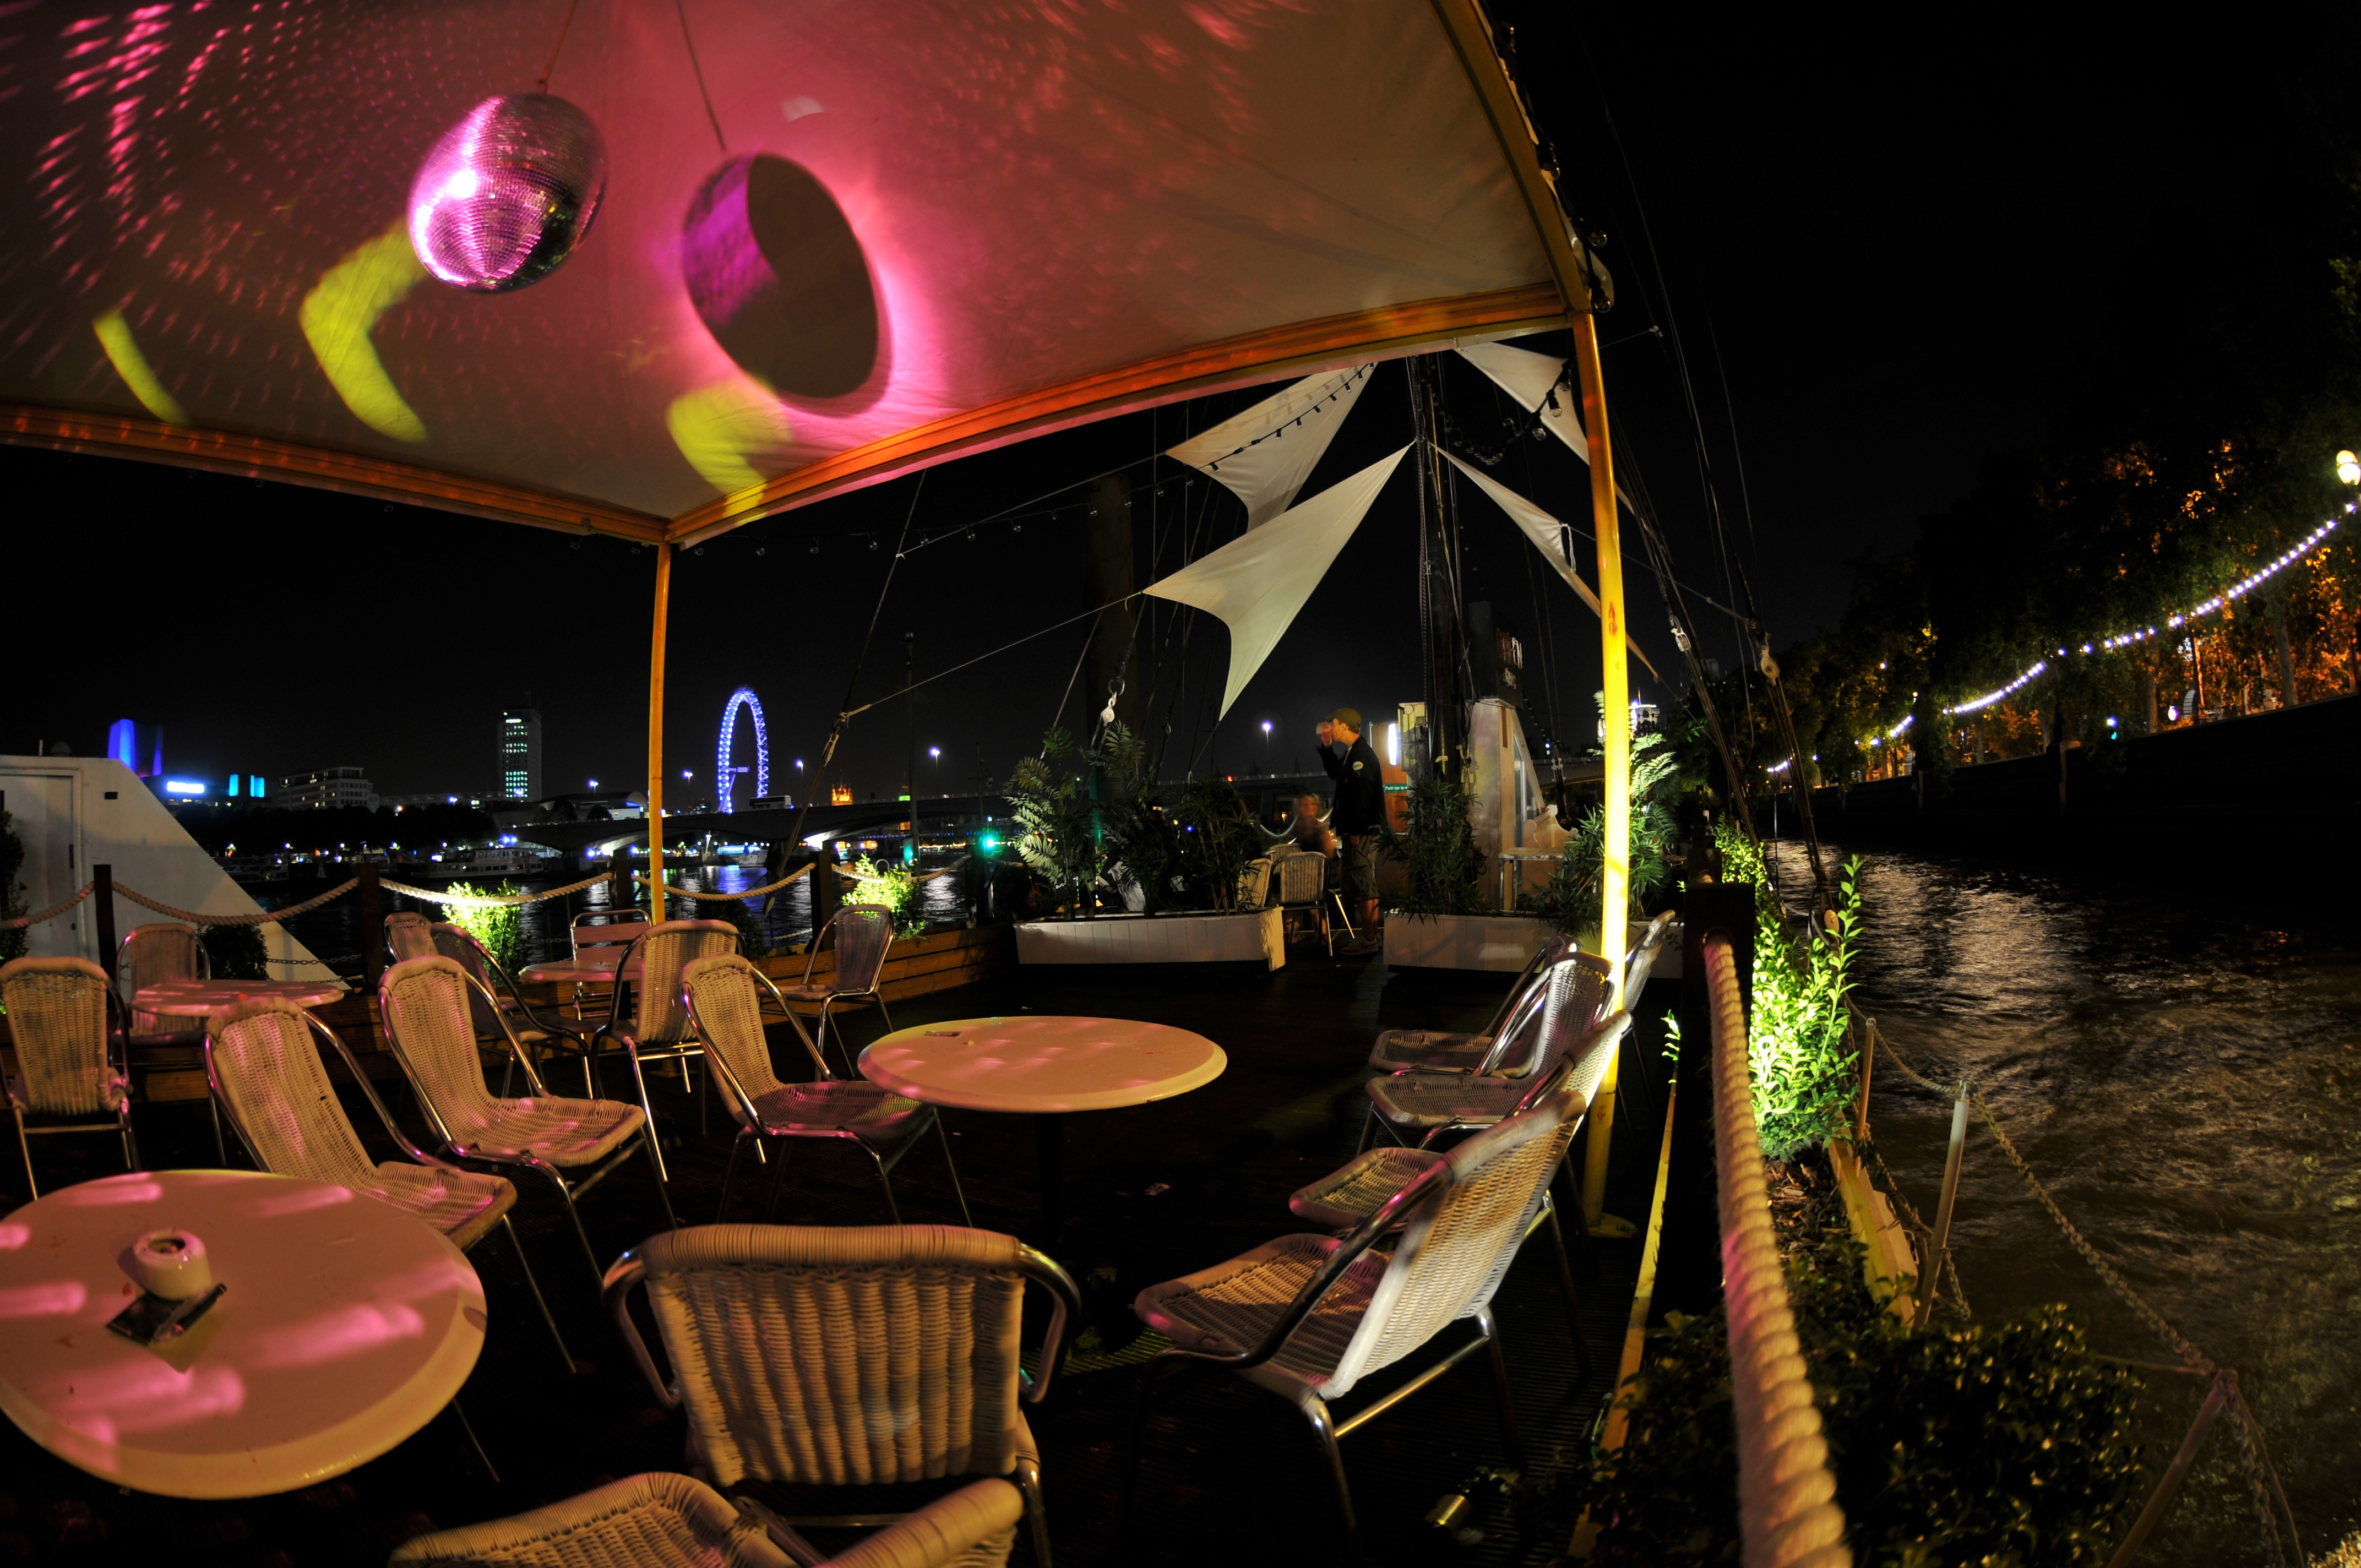 New Year's Eve Party On The Thames 2015